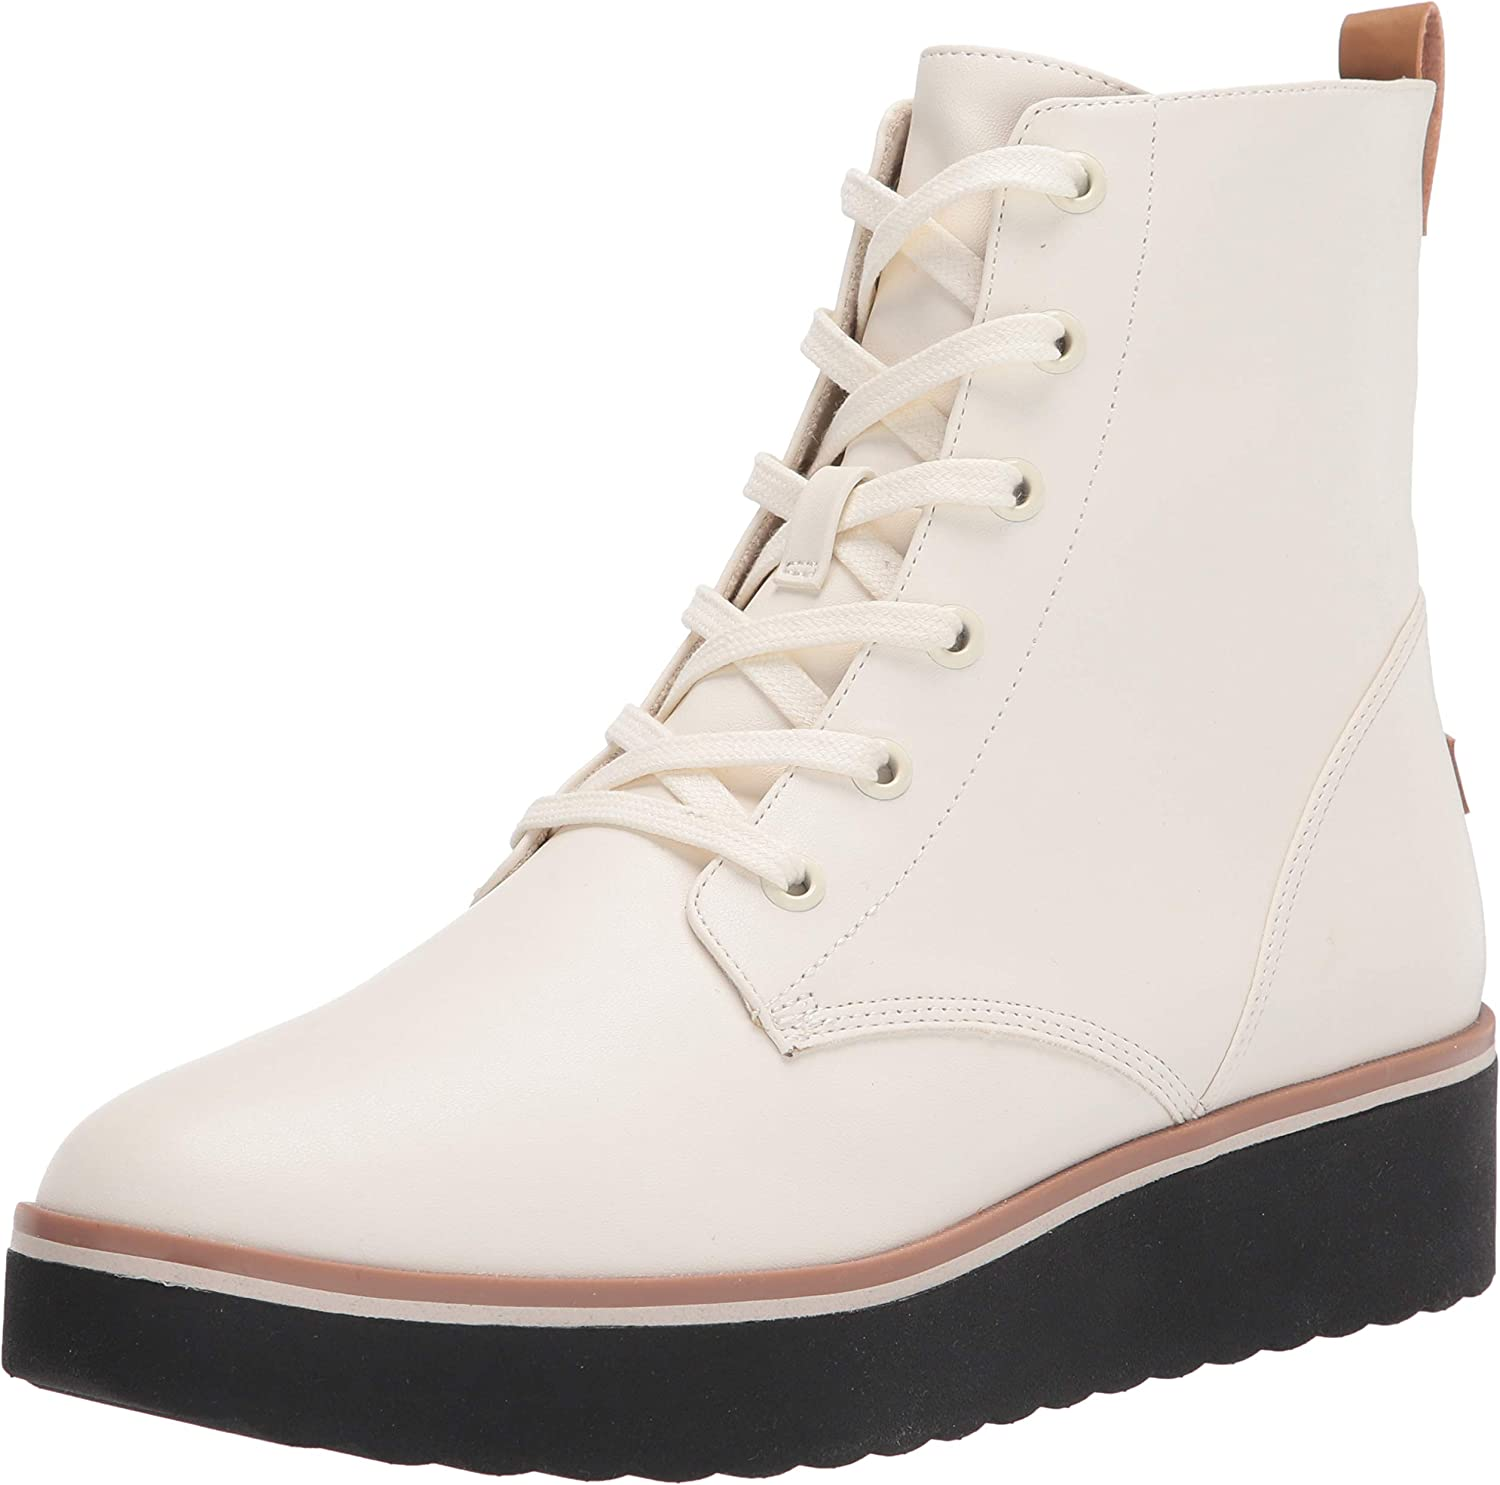 Dr. Scholl's Shoes Women's Local Mid Calf Boot